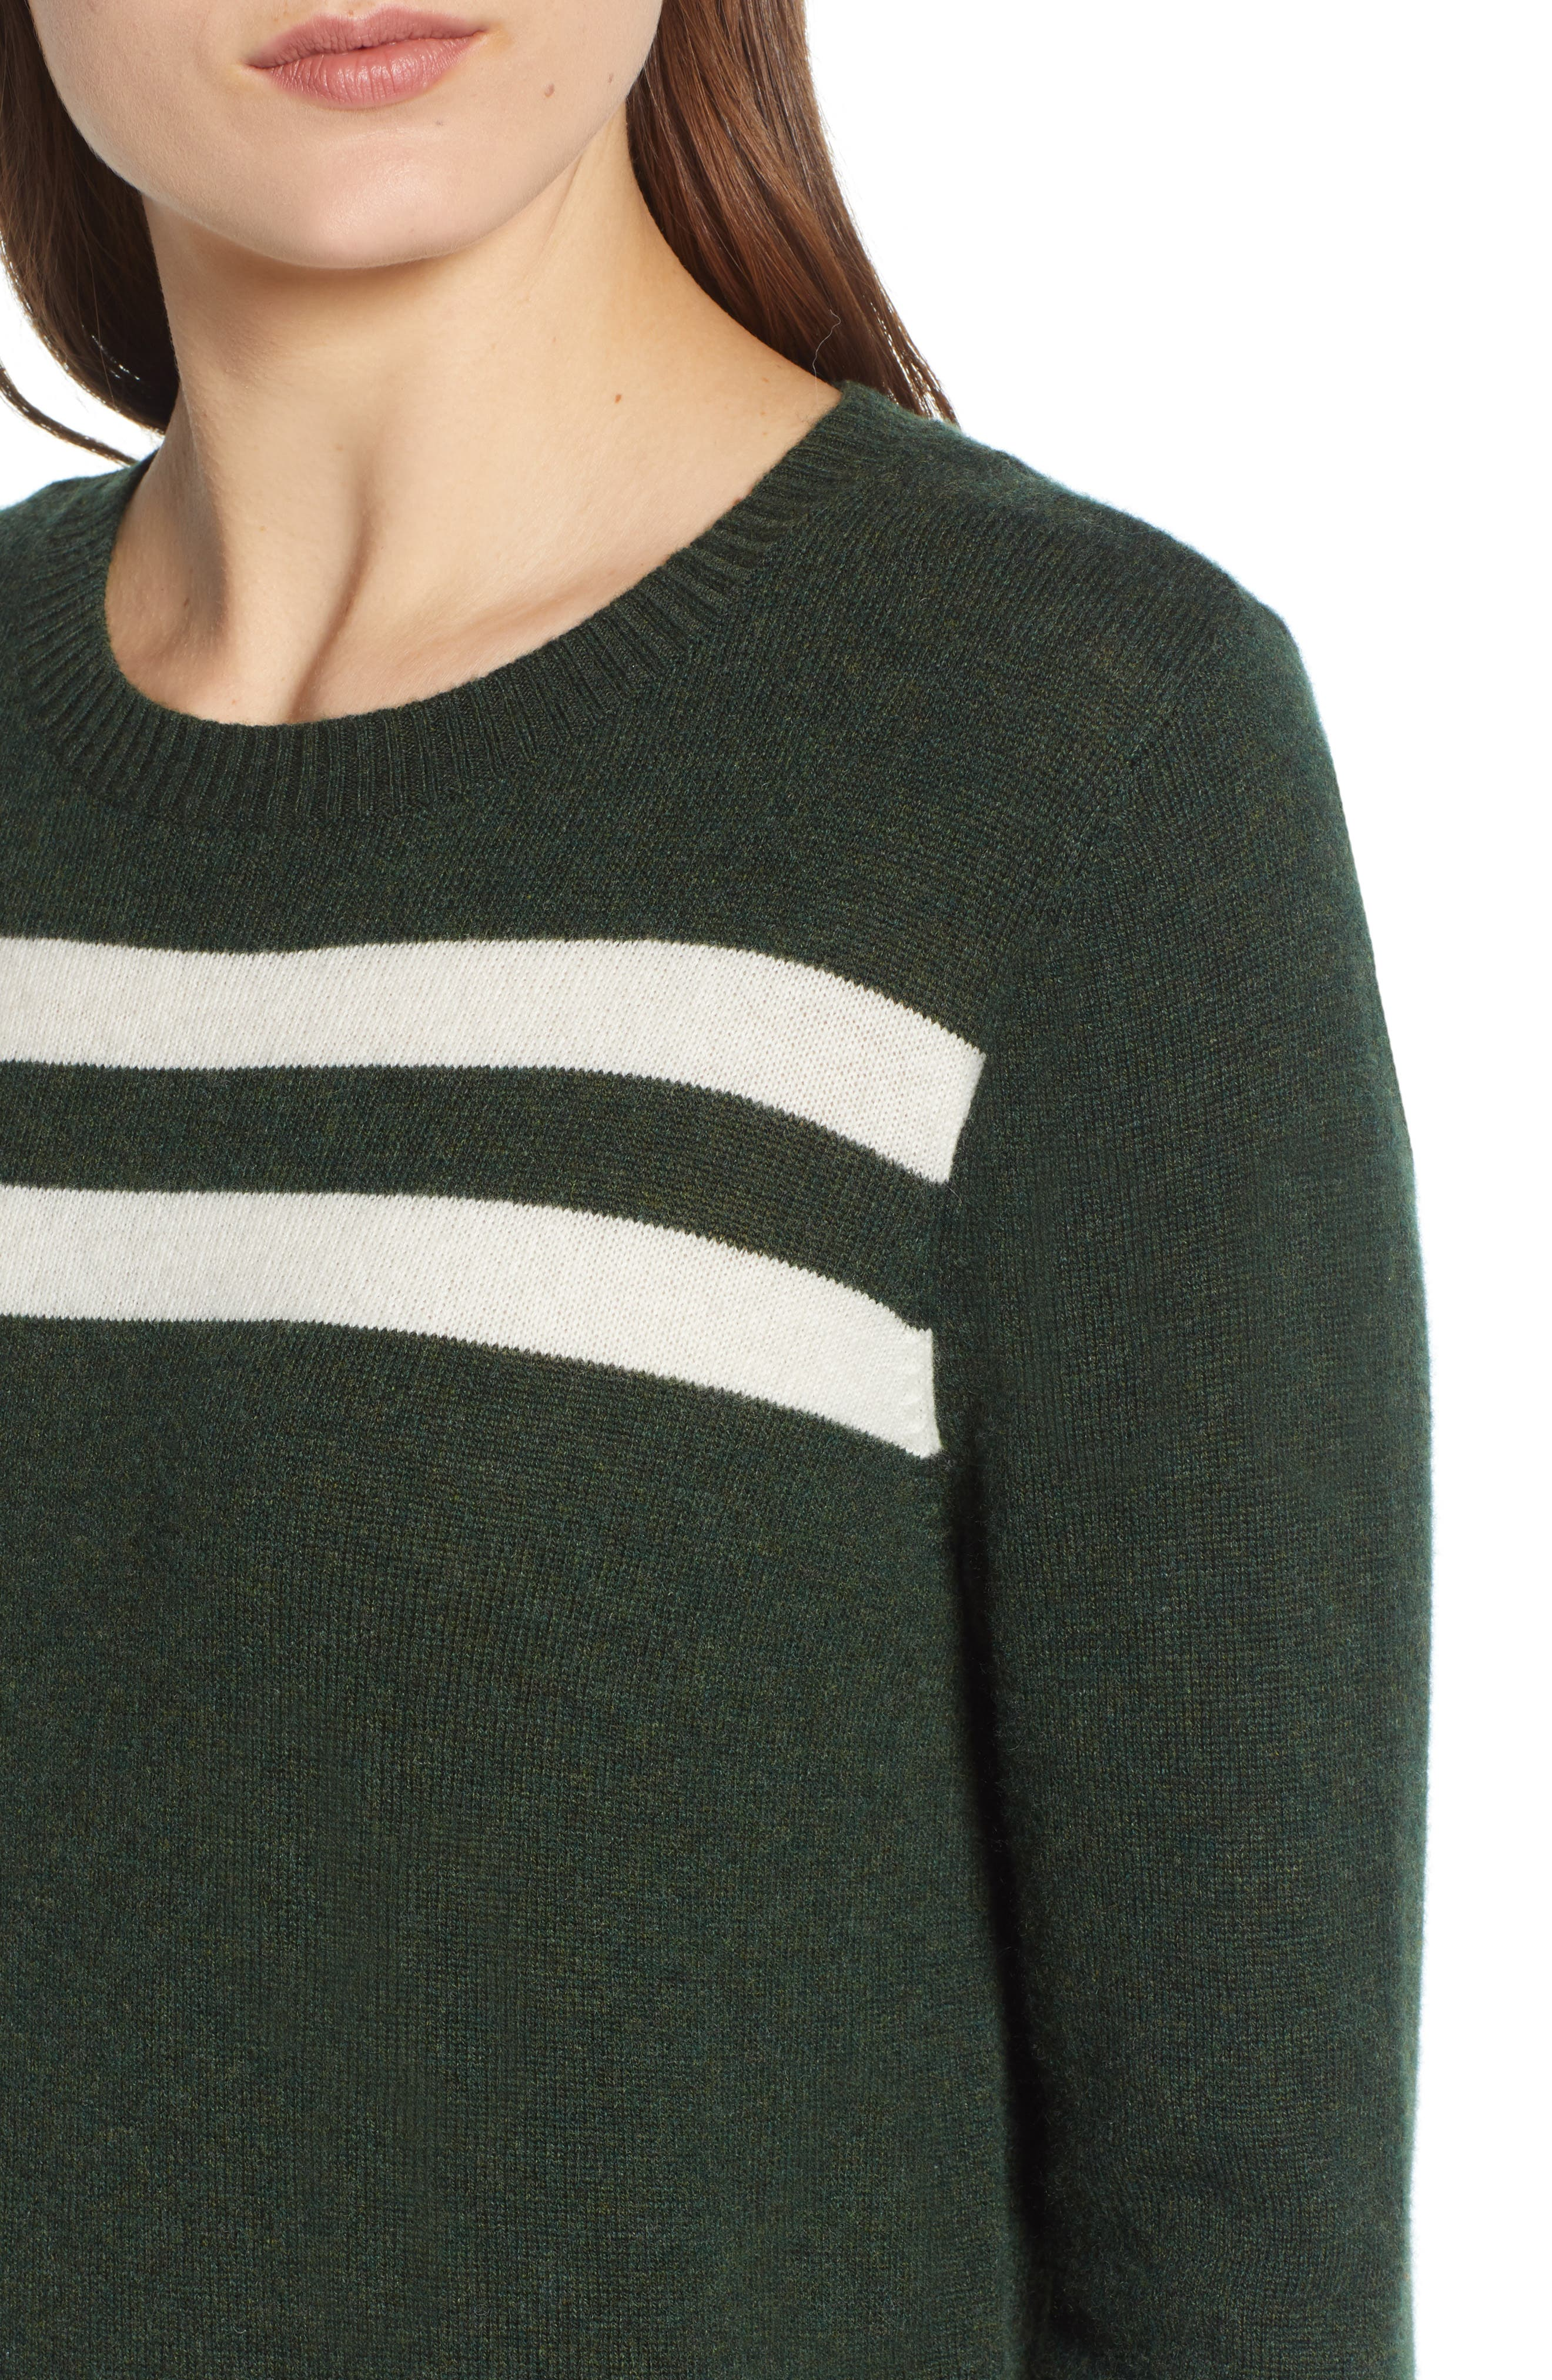 Marlowe Sweater,                             Alternate thumbnail 4, color,                             Eden/ White